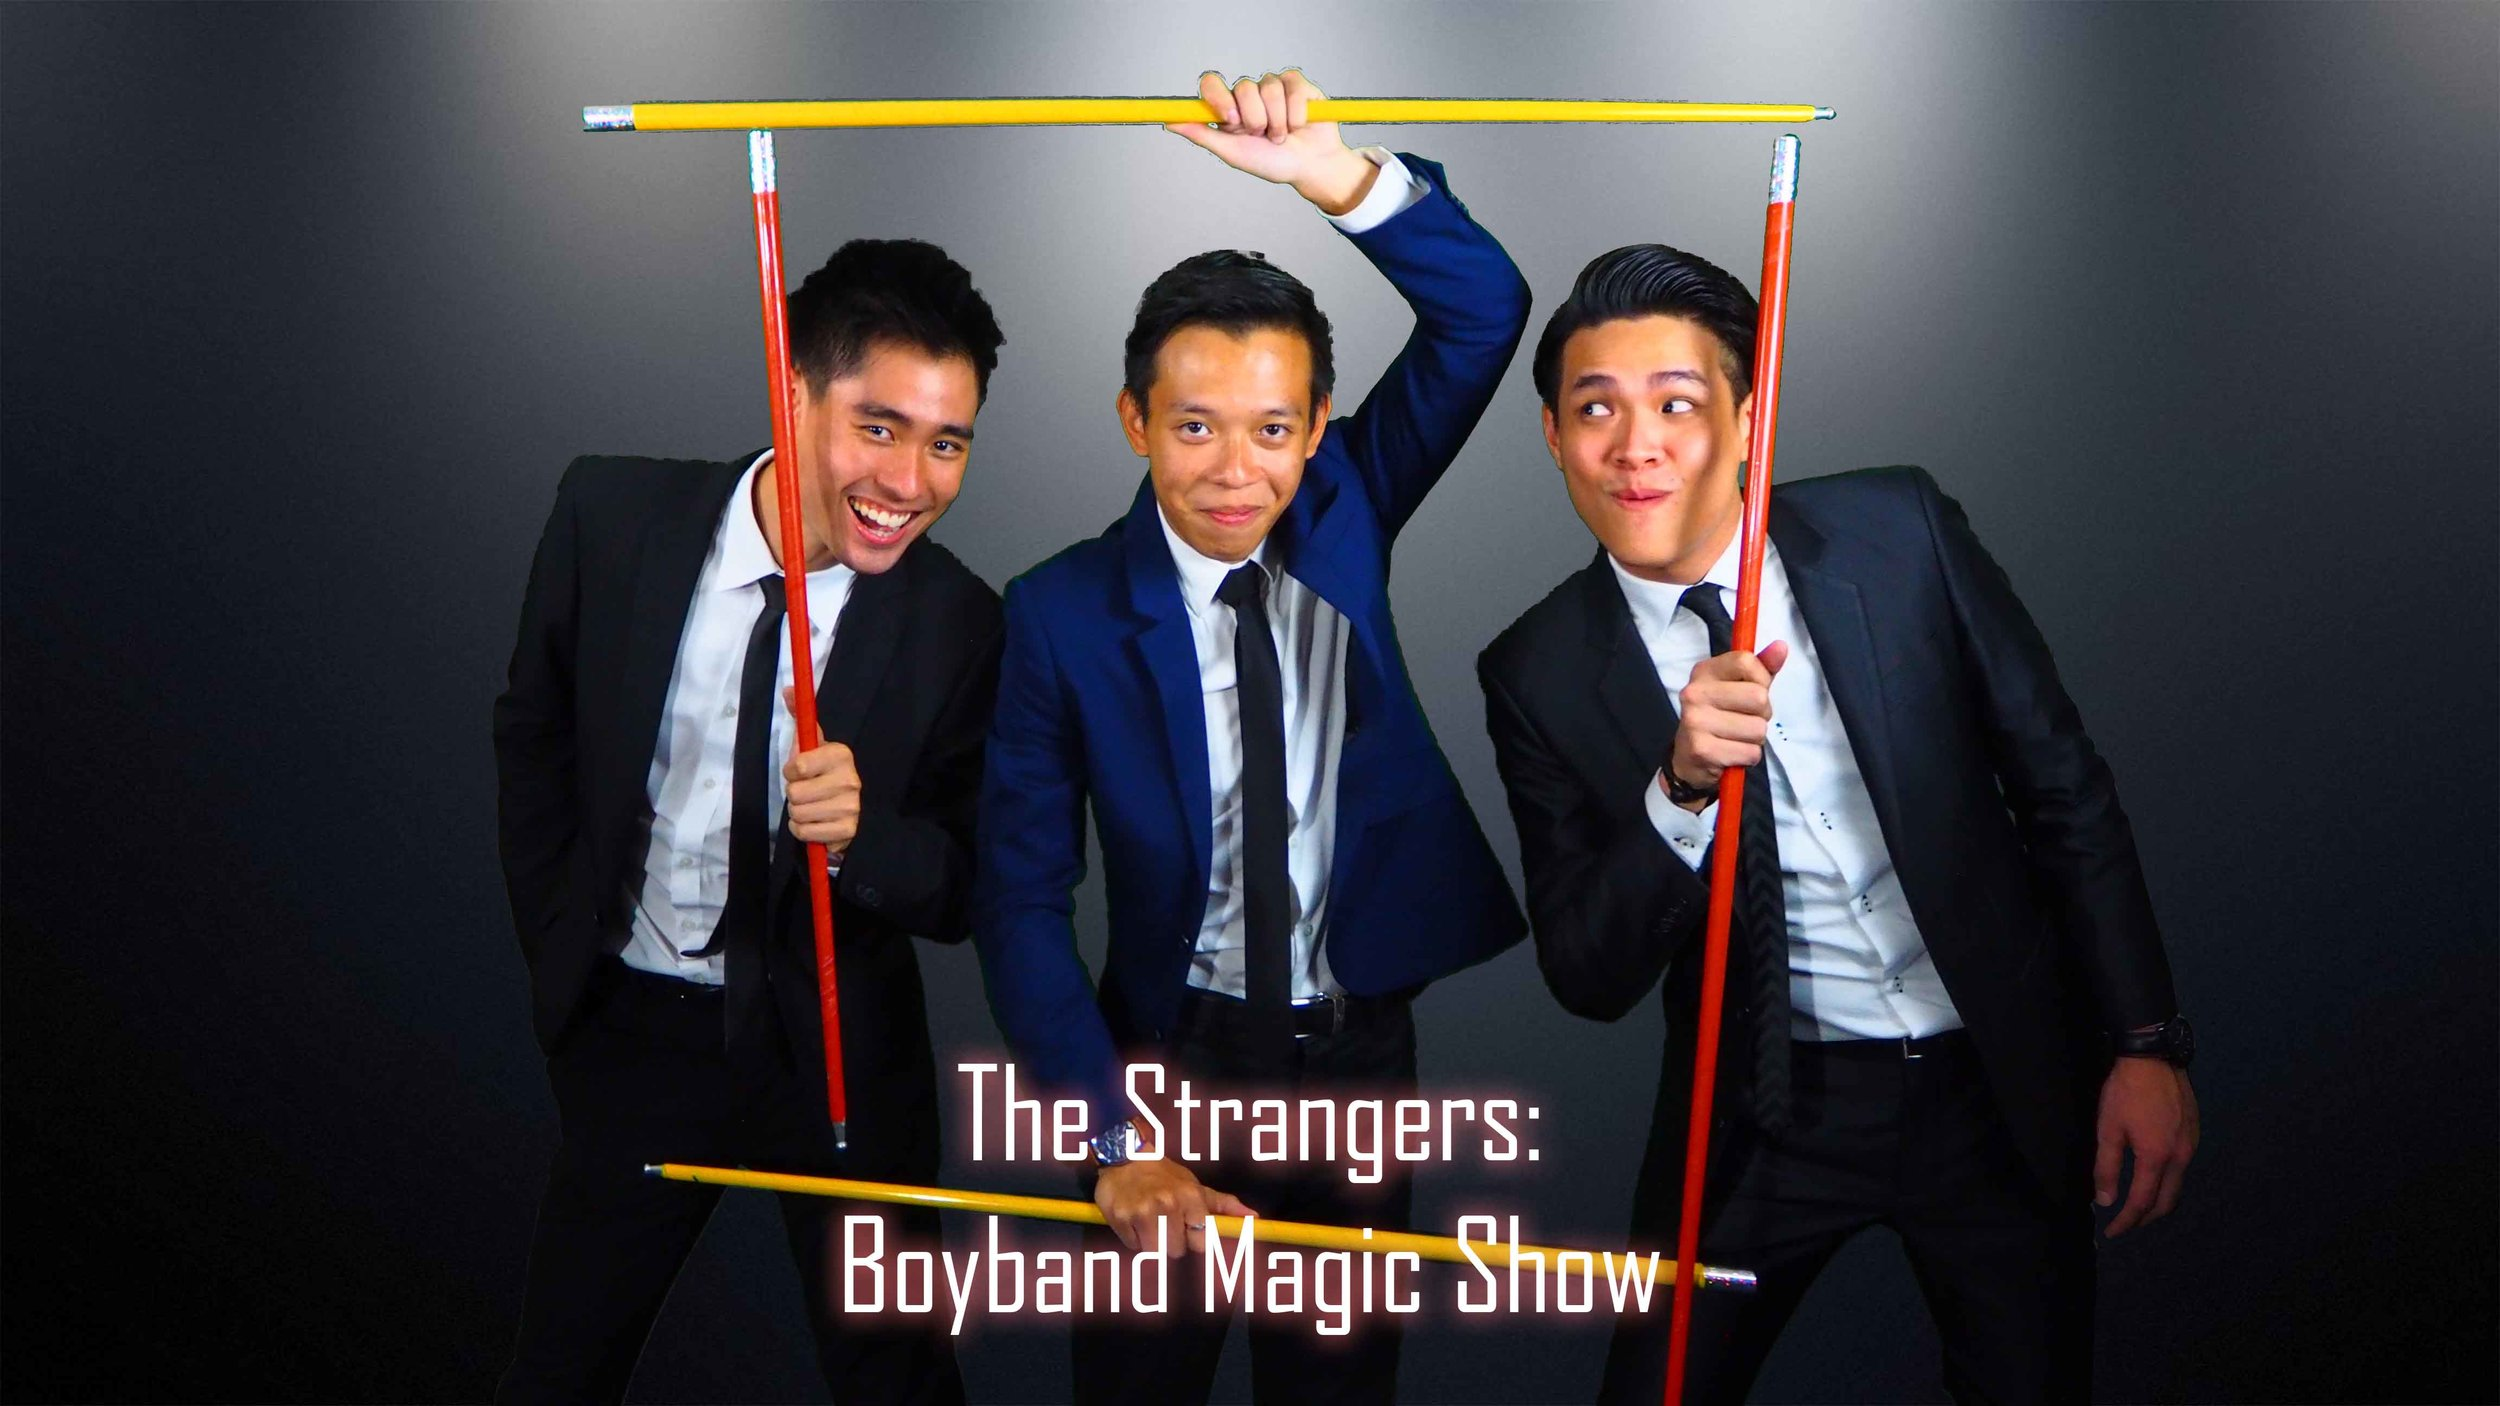 Boyband Magic Show The STrangers